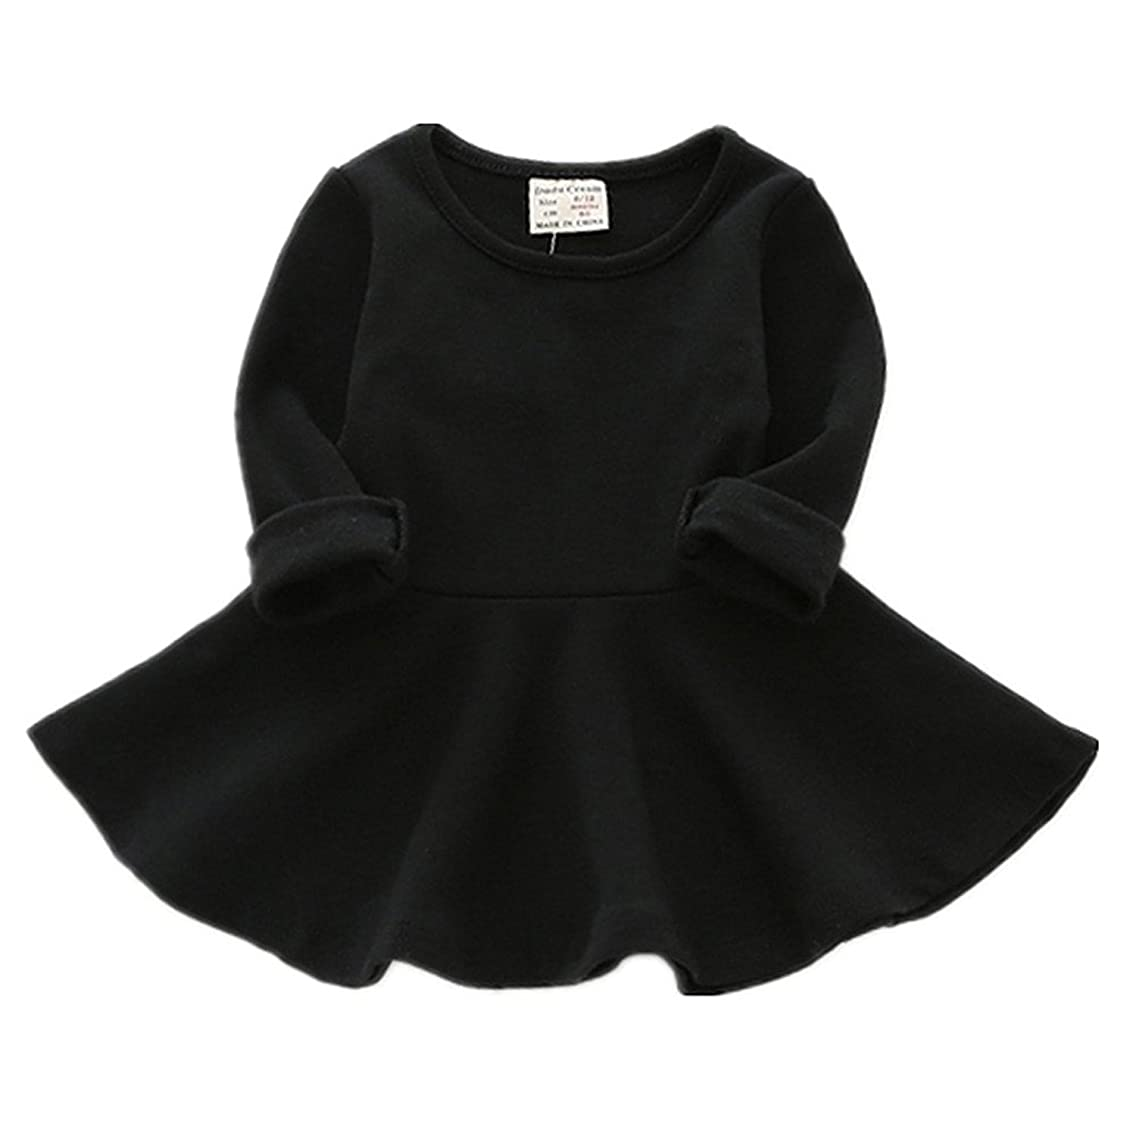 Toddler Girls Dress,Infant Round Neck Tulle Black Ruffle Long Sleeves Skirt